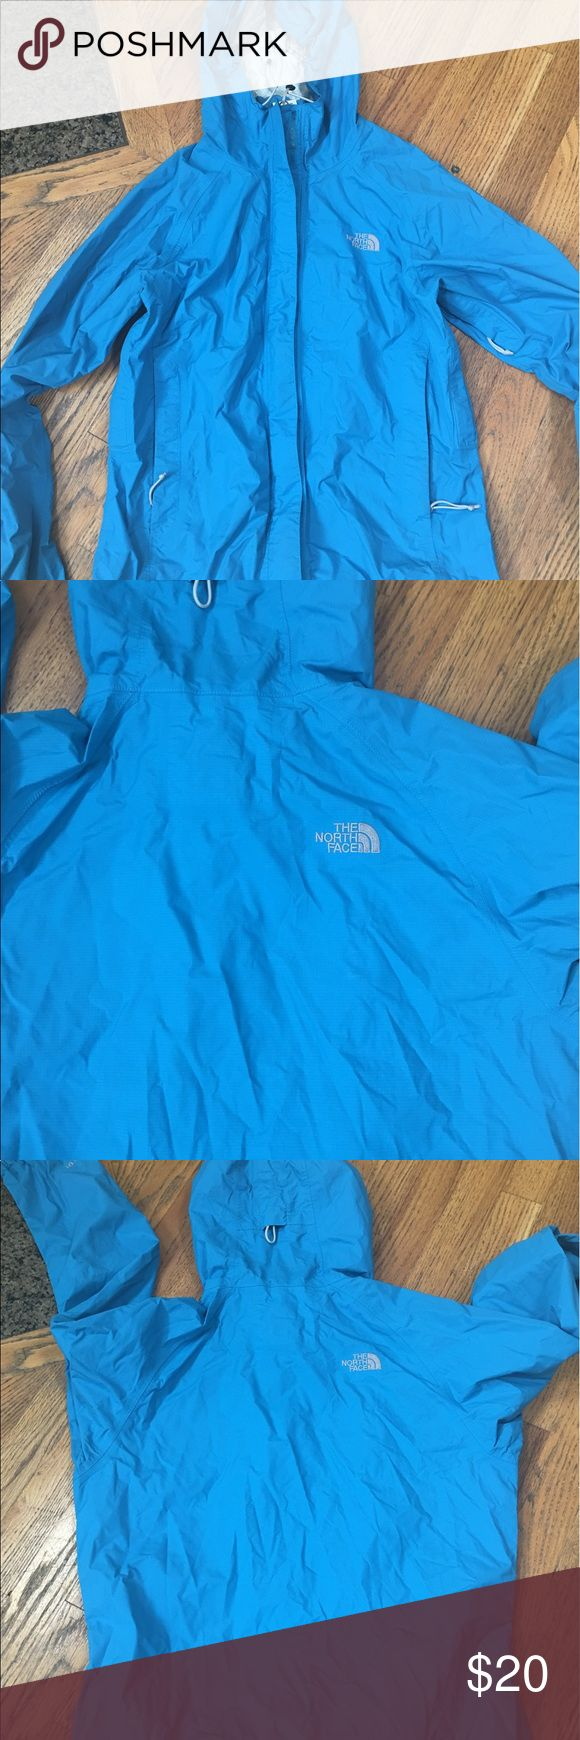 North Face women hyvent DT jacket North Face women hyvent DT jacket size small . Has some piling in the inside neck area see pictures The North Face Jackets & Coats